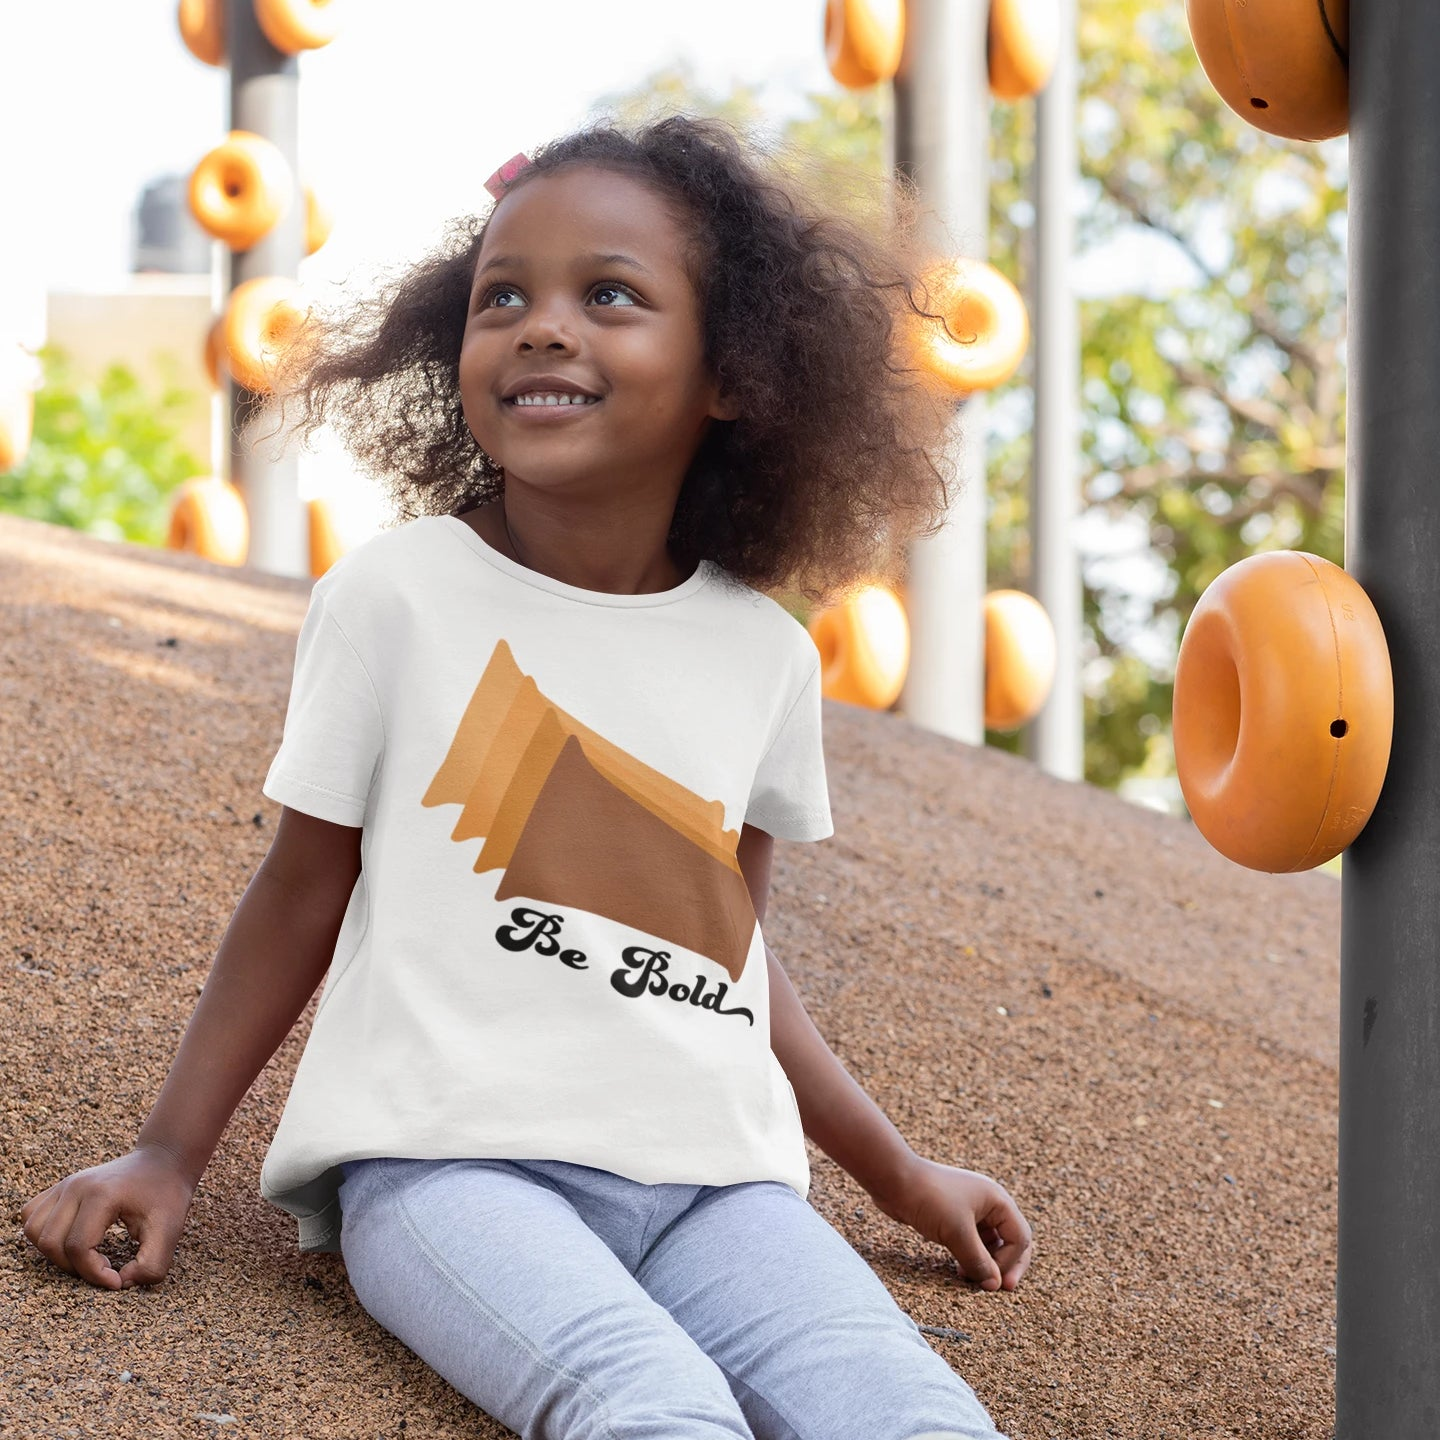 child wearing a white shirt with brown rectangles and the words be bold on it